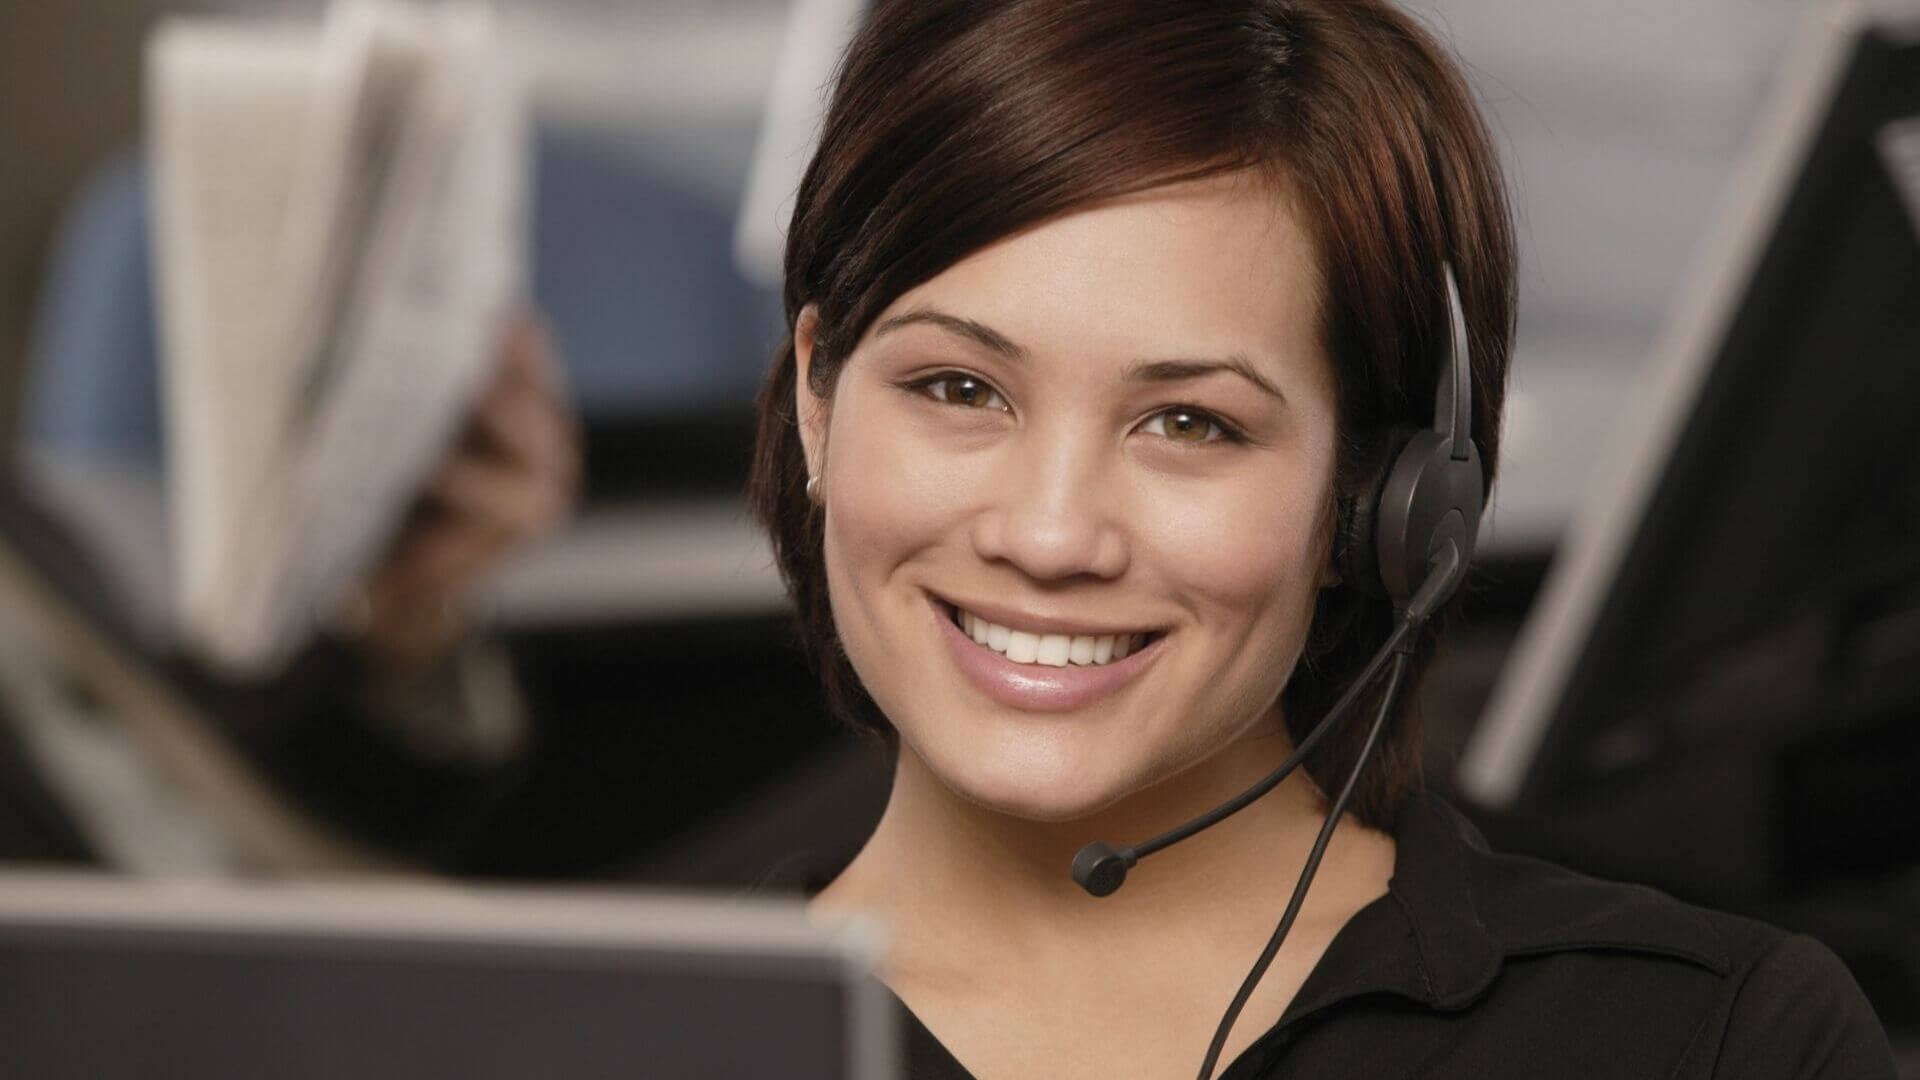 s2s-customer-service-single-point-of-contact